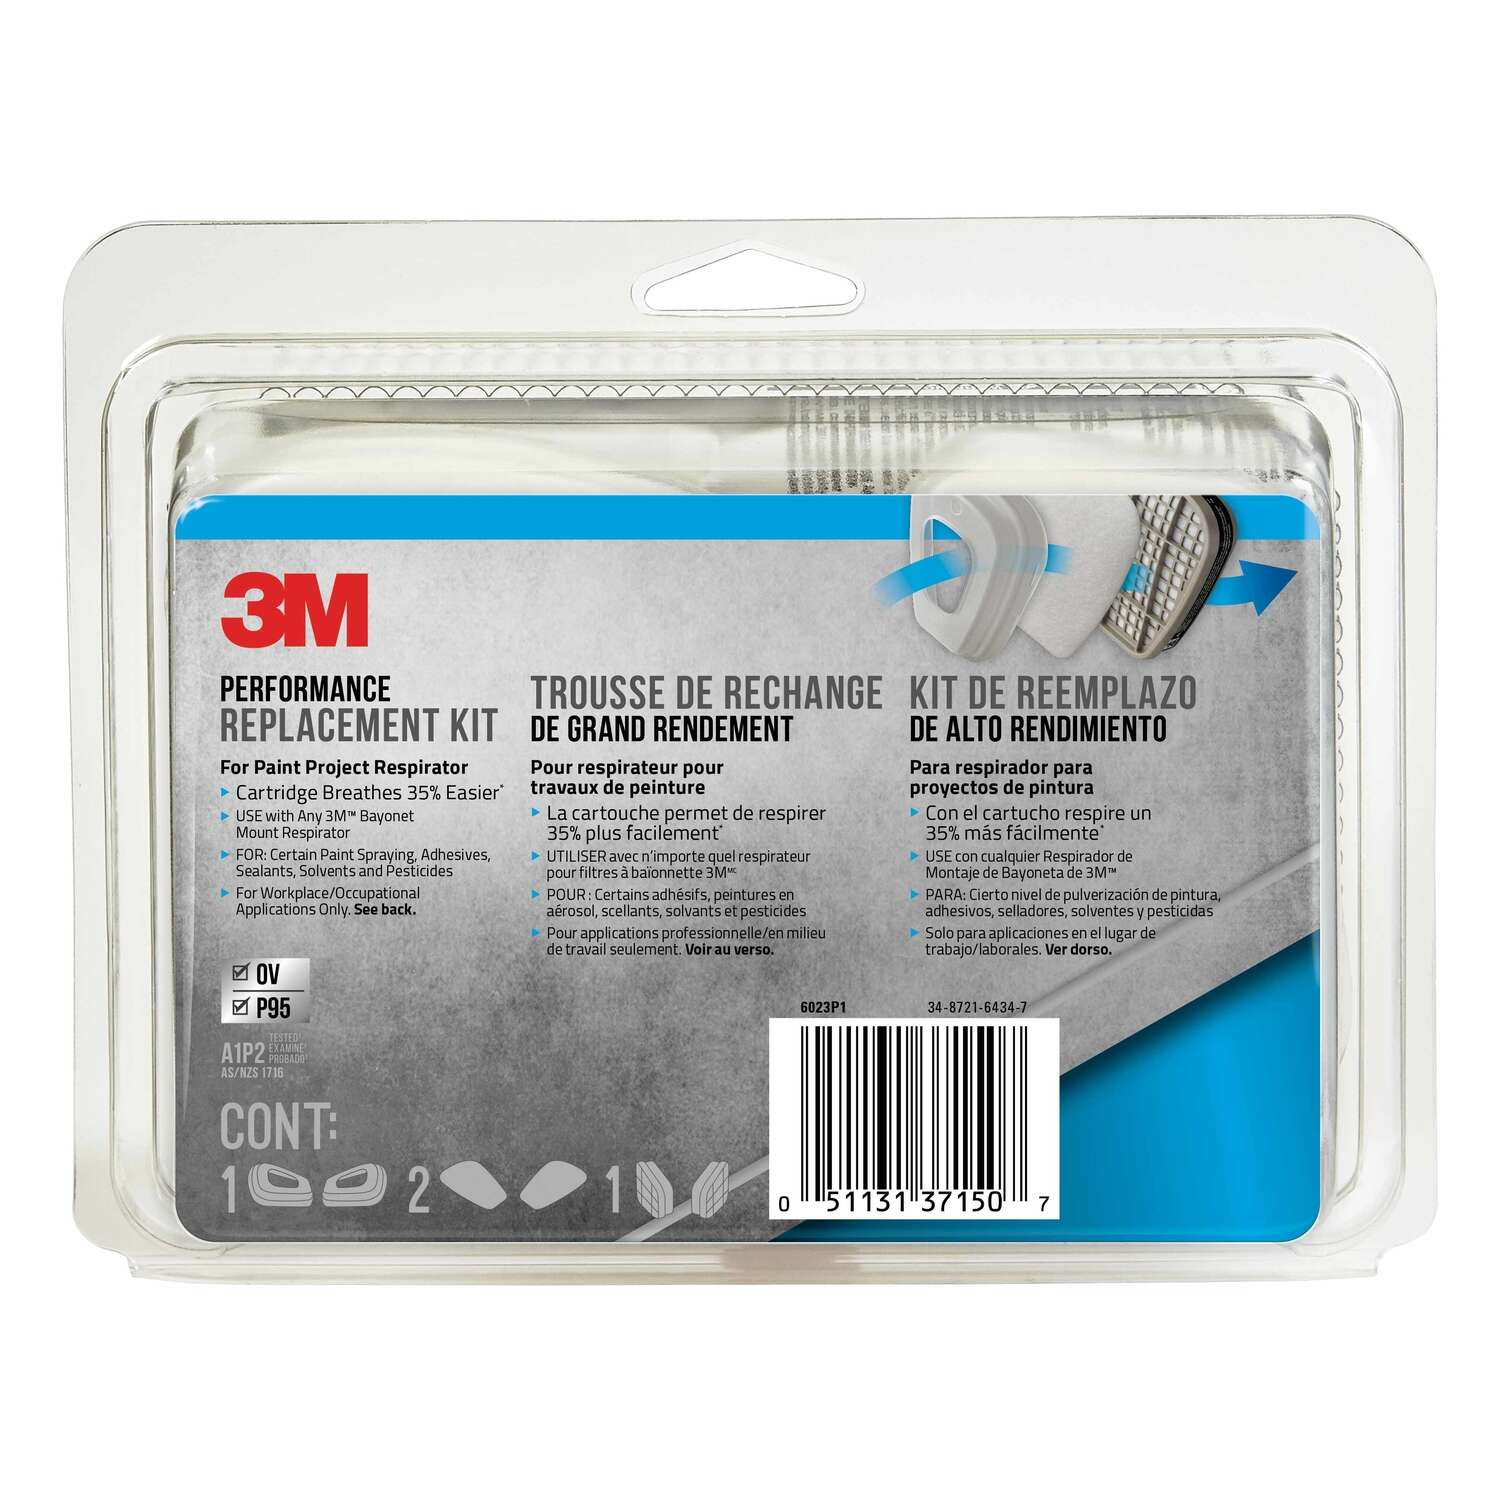 3M  P95  Paint Spray and Pesticide Application  Respirator Supply Kit  Gray  8 pc.